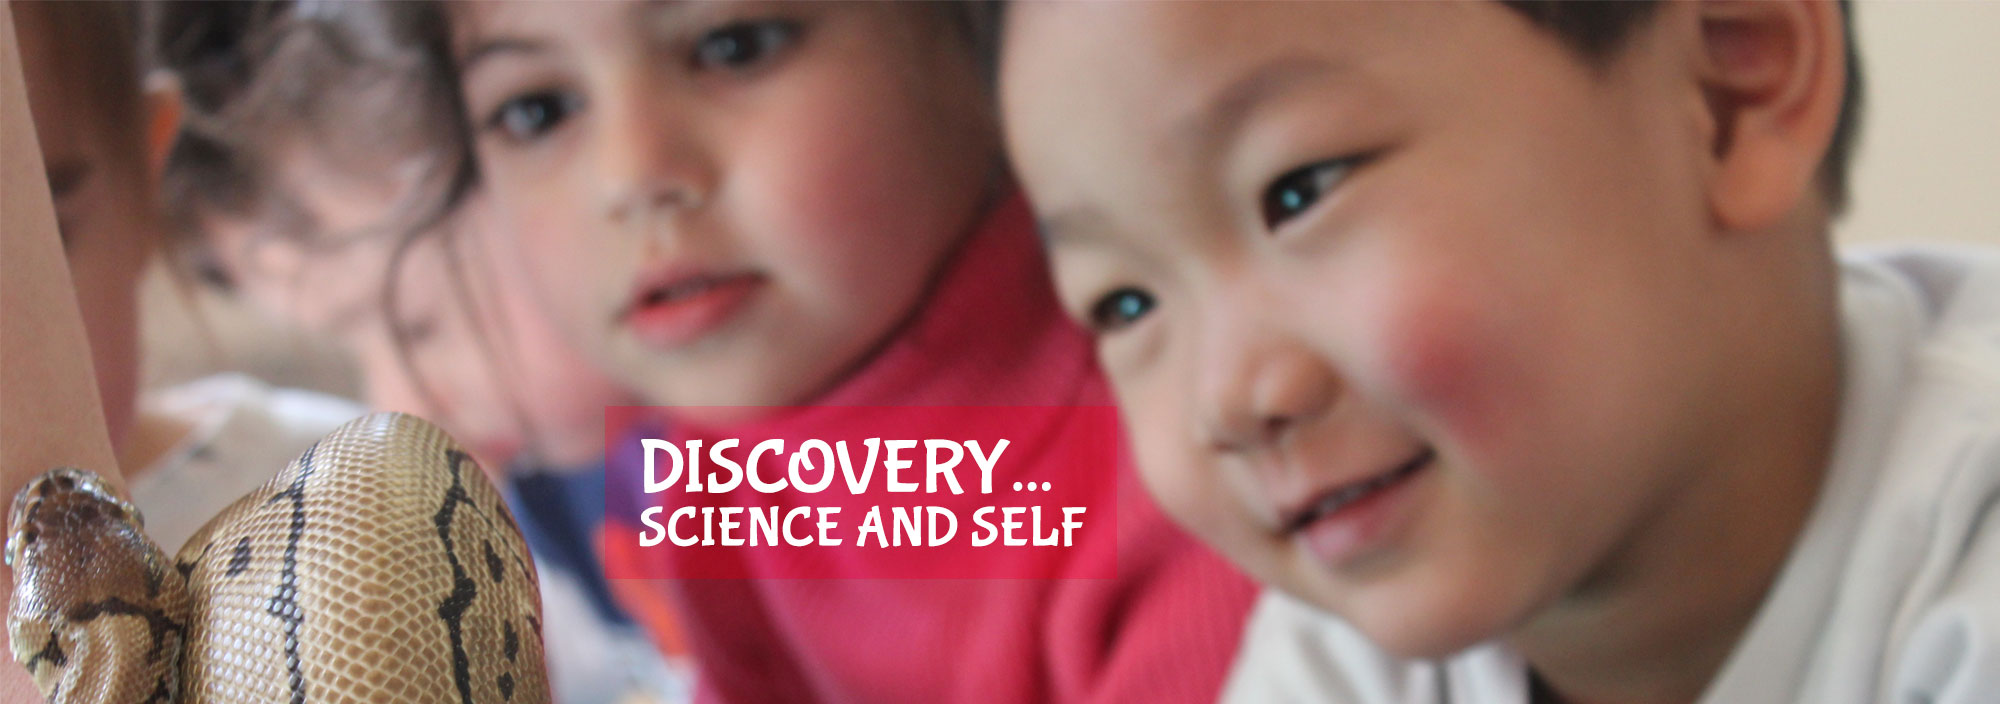 Discovery... Science and Self